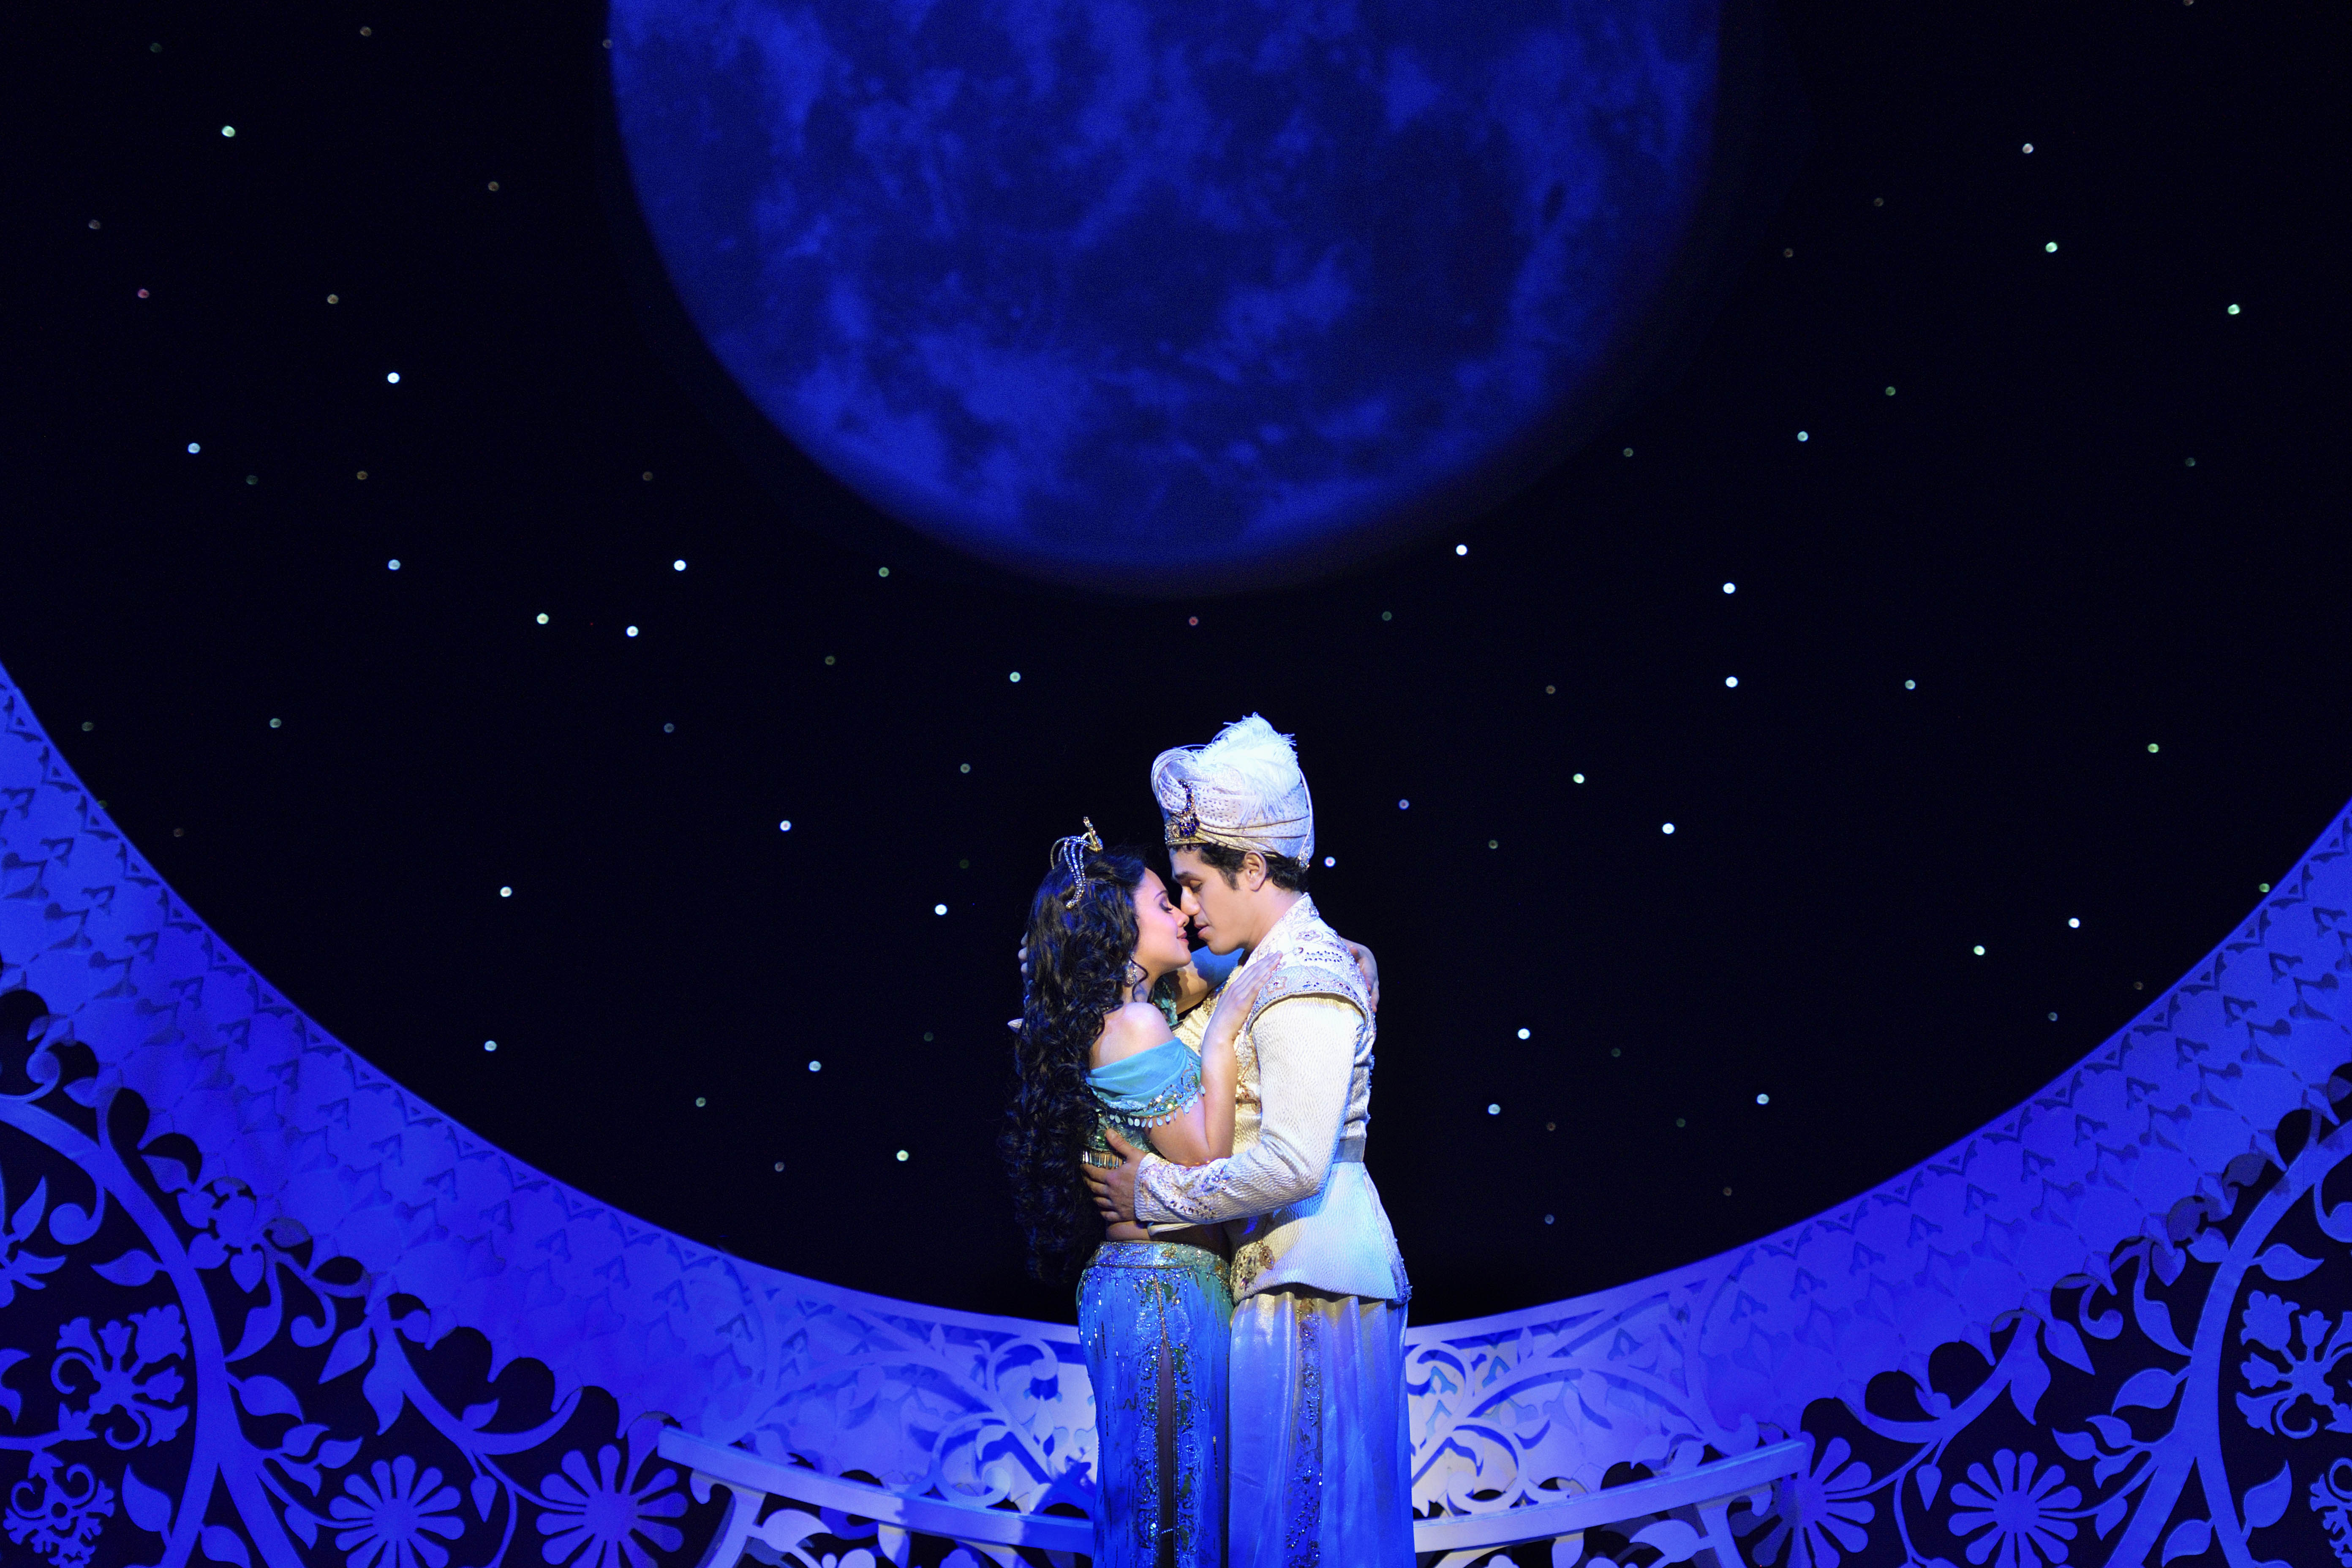 Disney Theatrical Productions under the direction of Thomas Schumacher presents Aladdin, the US tour, music by Alan Menken, lyrics by Howard Ashman and Tim Rice, book and additional lyrics by Chad Beguelin, opening night April 19 at Cadillac Palace Theatre in Chicago, starring: Adam Jacobs (Aladdin), Anthony Murphy (Genie), Isabelle McCalla (Jasmine), Zach Bencal (Babkak), Mike Longo (Kassim), Philippe Arroyo (Omar), Jonathan Weir (Jafar), Reggie de Leon (Iago) and JC Montgomery (Sultan) directed and choreographed by Casey Nicholaw